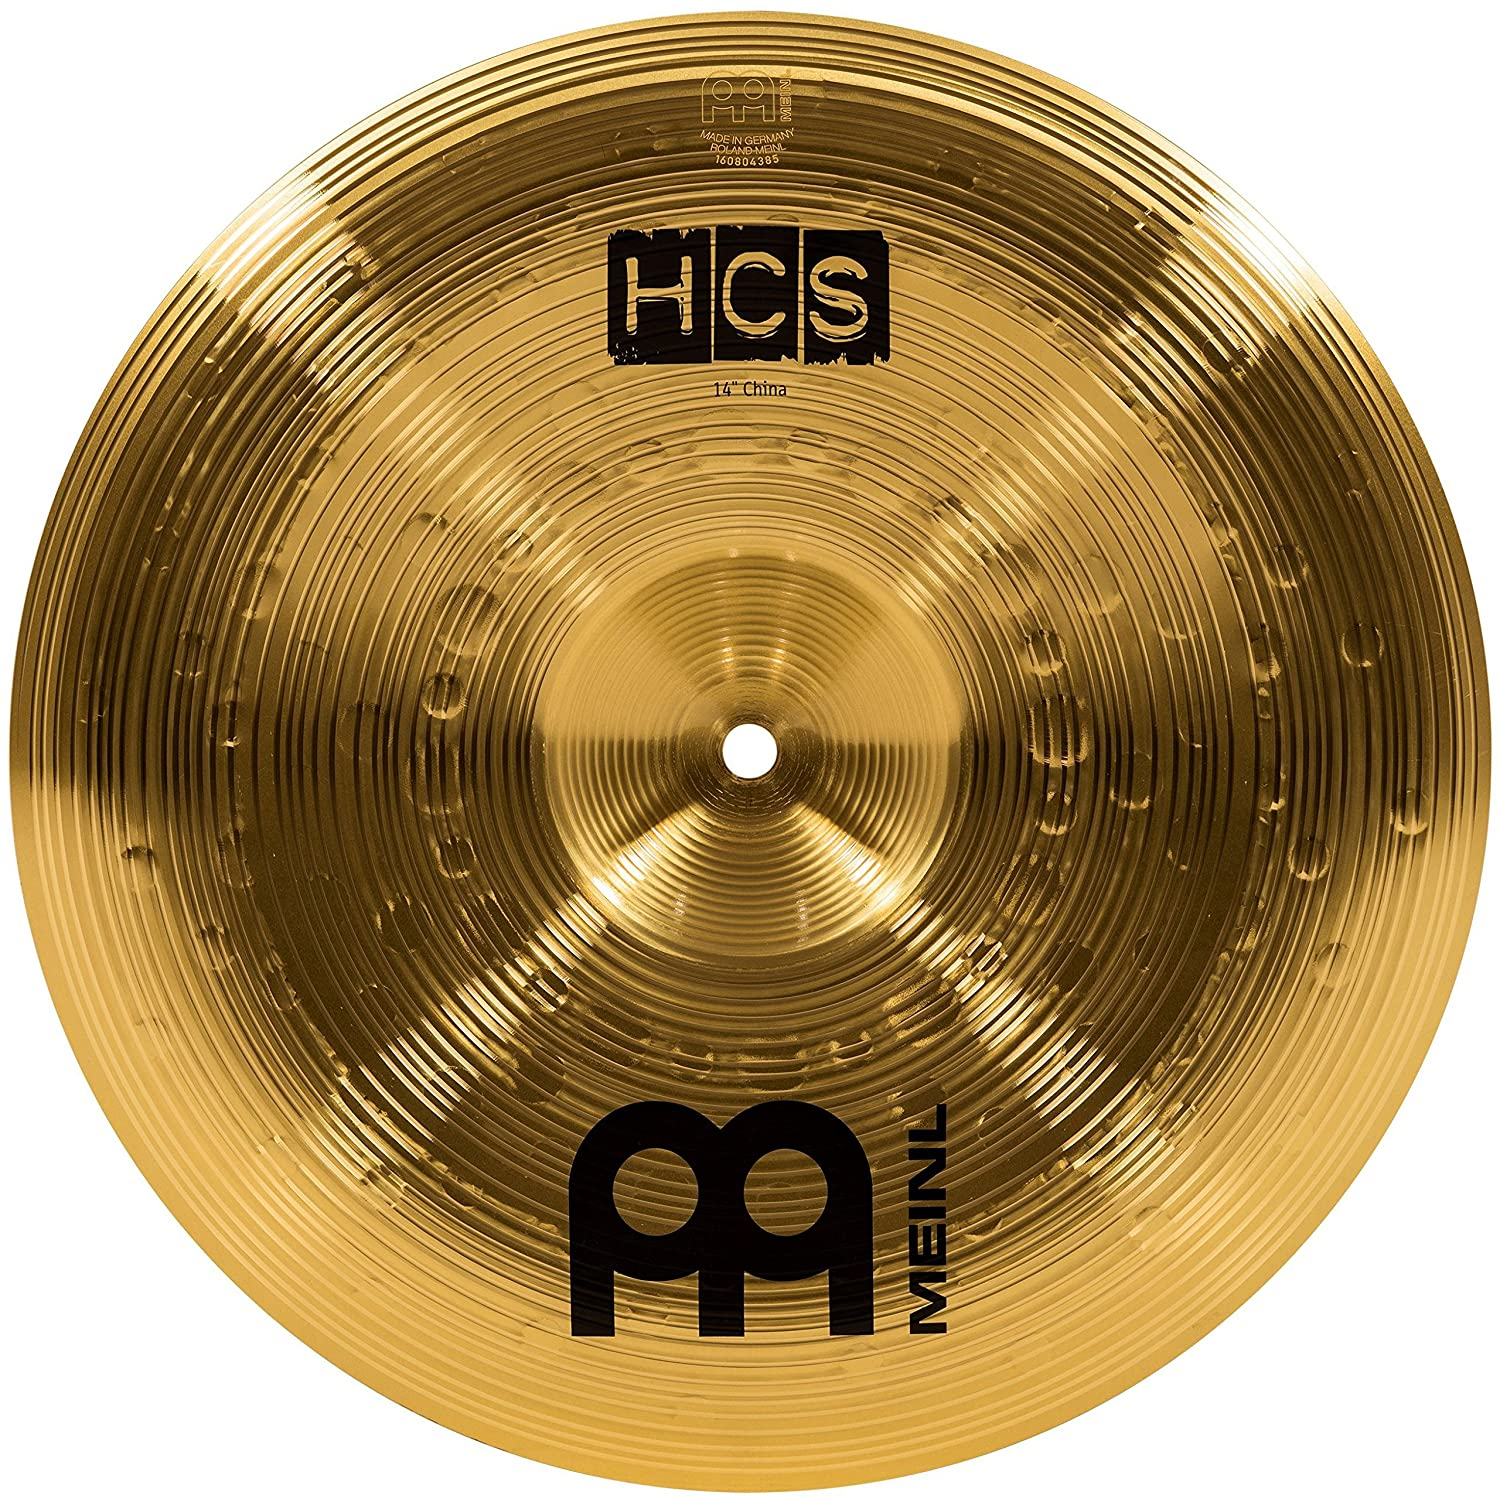 Meinl Cymbals HCS18CH 18-Inch HCS Traditional China